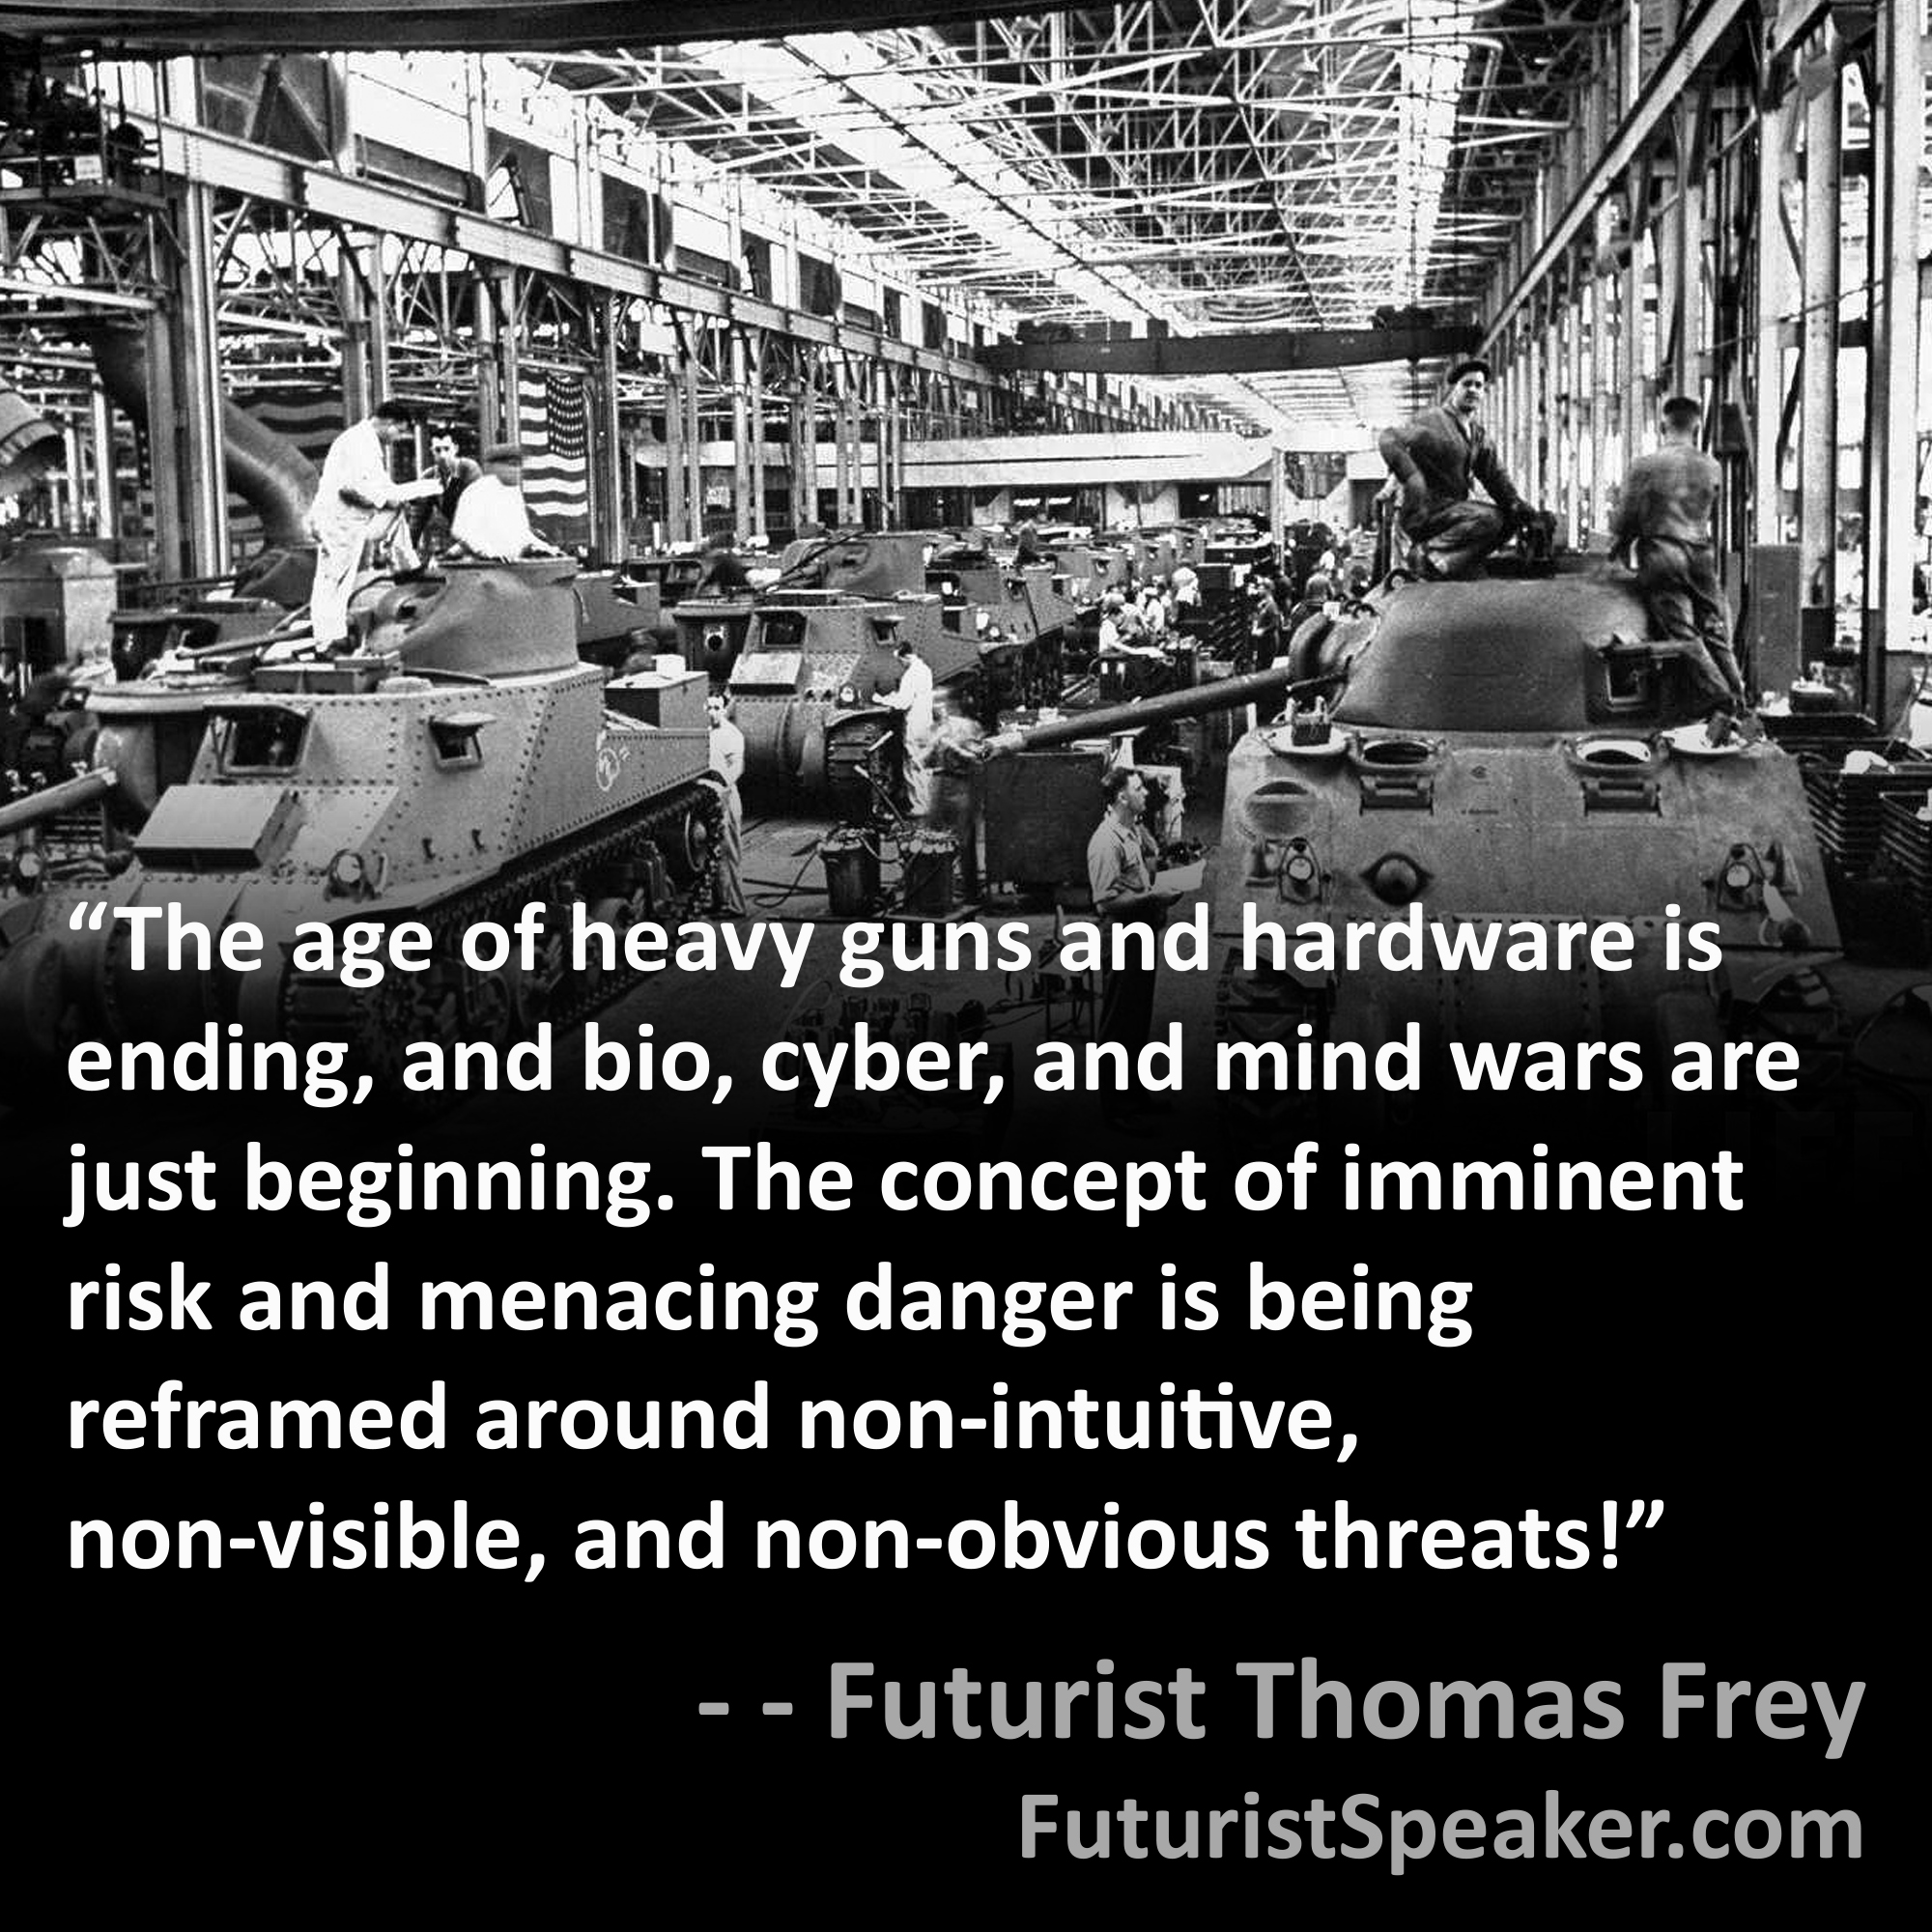 Thomas Frey Futurist Speaker Famous Quote: The age of heavy guns and hardware is ending, and bio, cyber, and mind wars are just beginning. The concept of imminent risk and menacing danger is being reframed around non-intuitive, non-visible- and non-obvious threats.